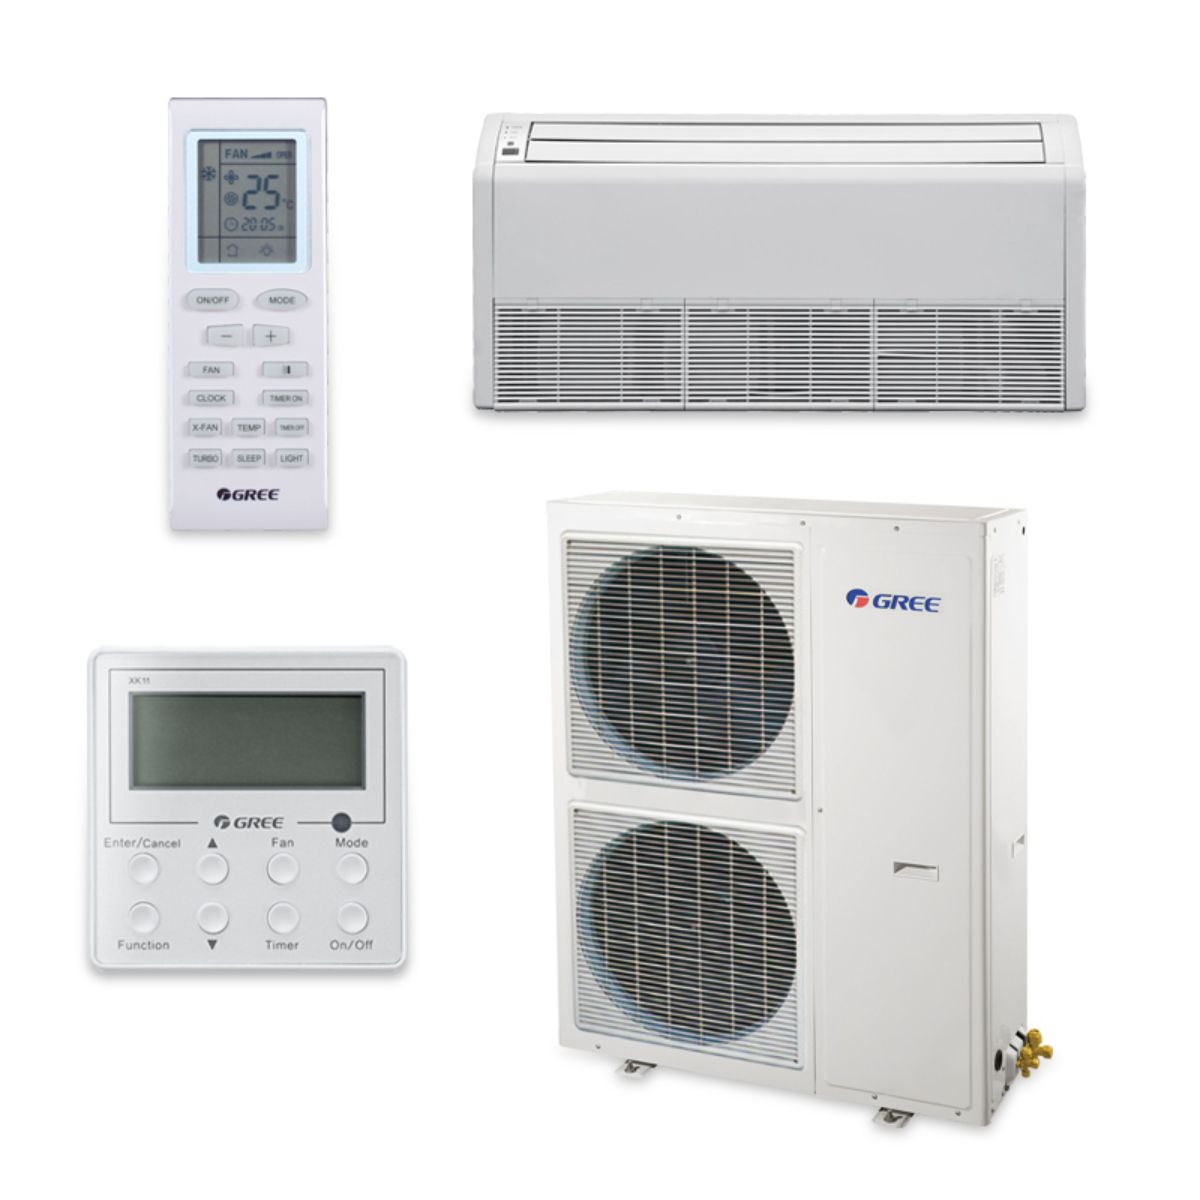 Gree UMAT42HP230V1AF-S - 42,000 BTU 16 SEER Floor Ceiling Ductless Mini Split Air Conditioner Heat Pump 208-230V